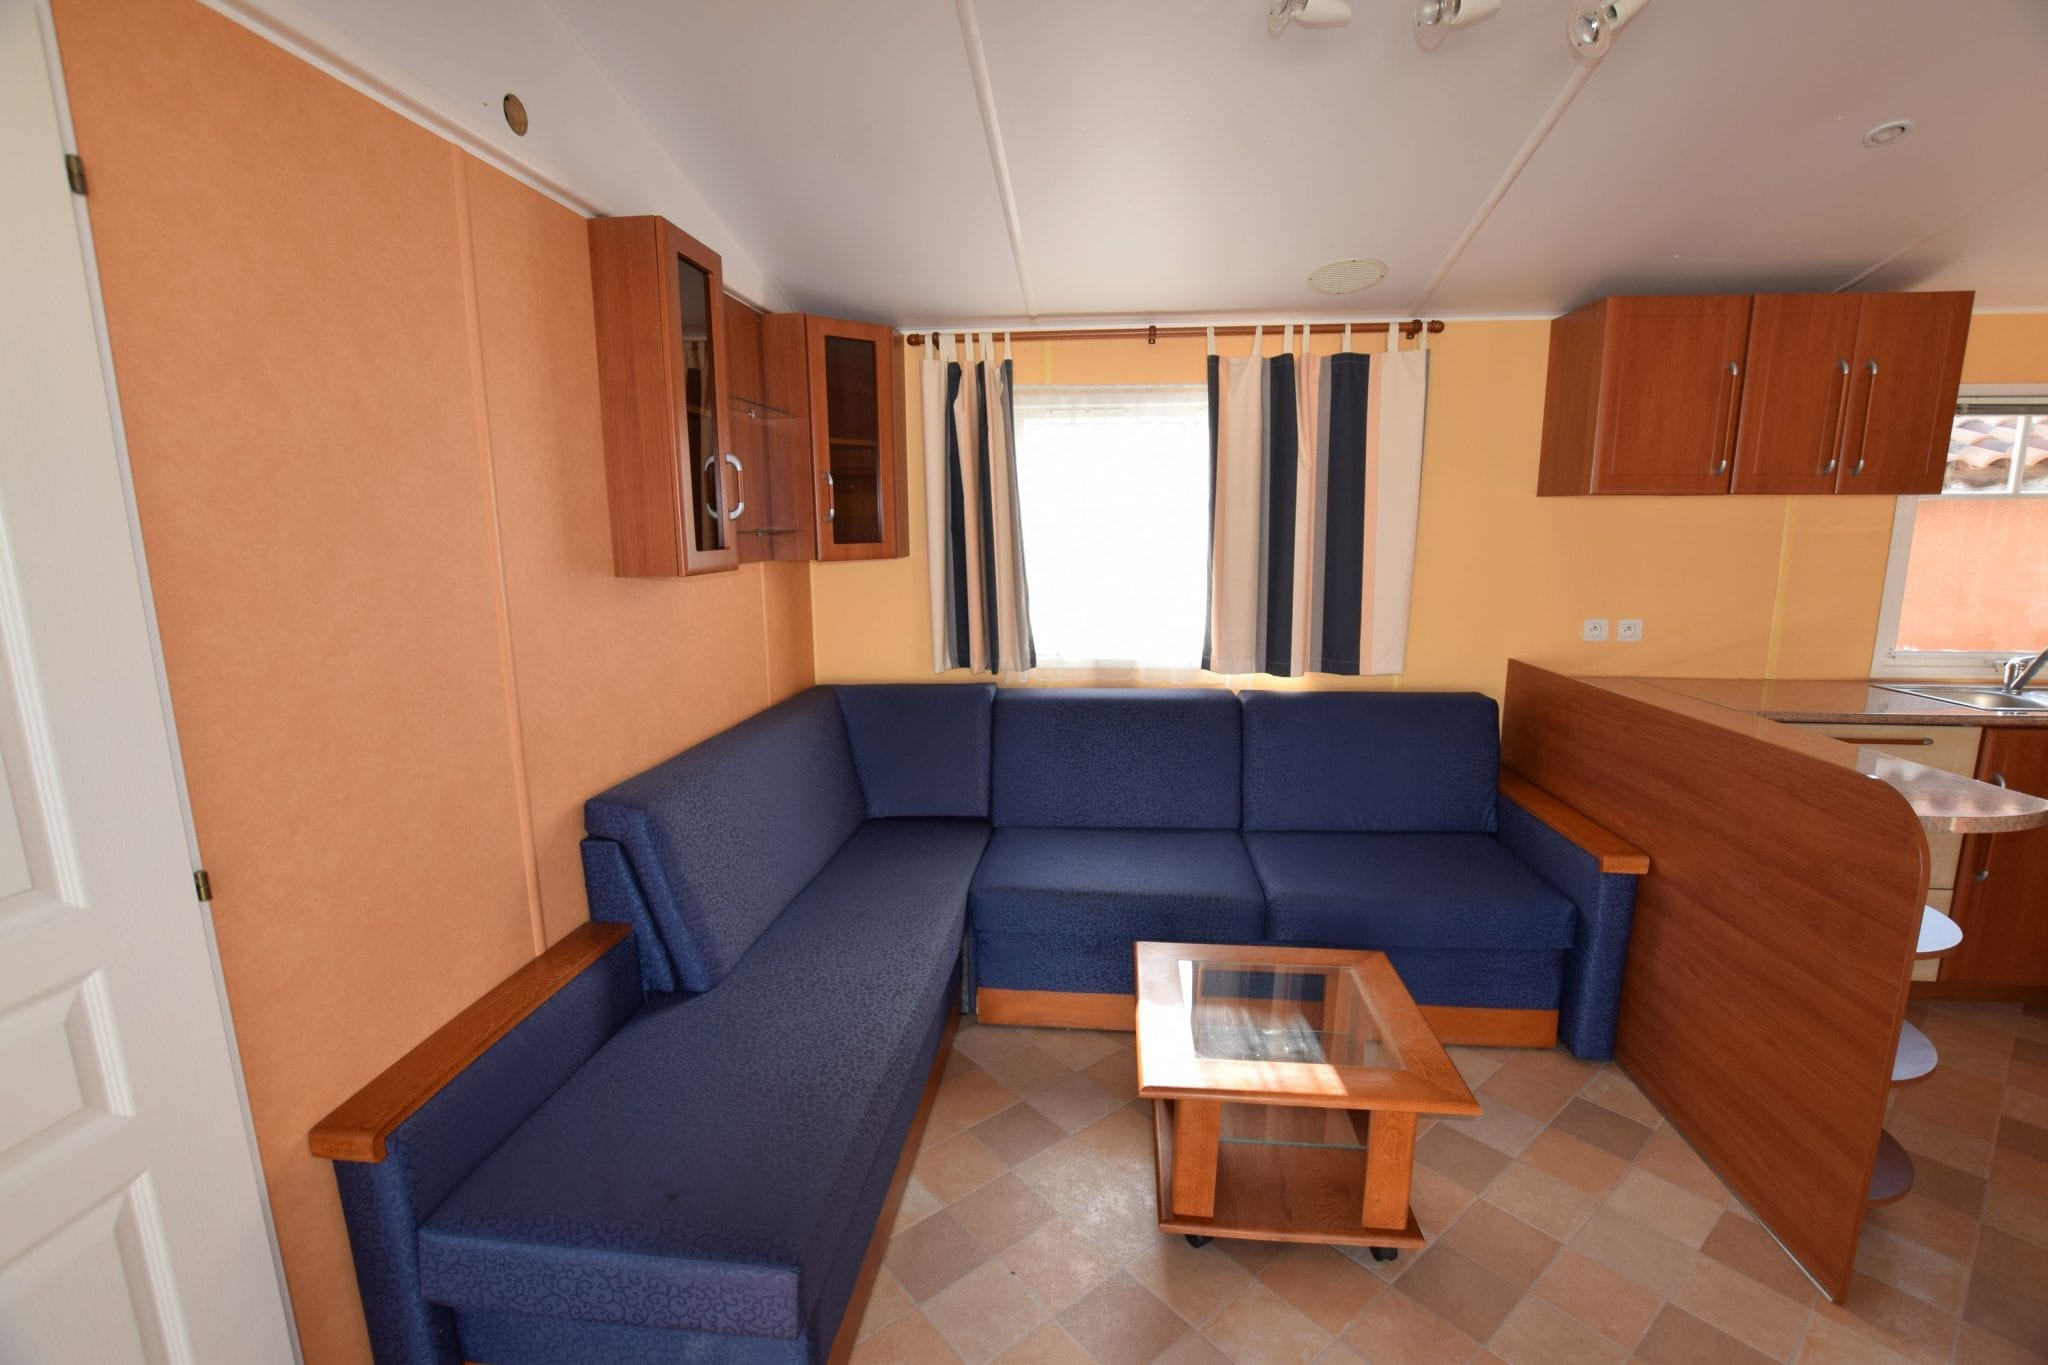 Irm Rubis - Mobil home d'occasion - 12 500€ - Zen Mobil homes